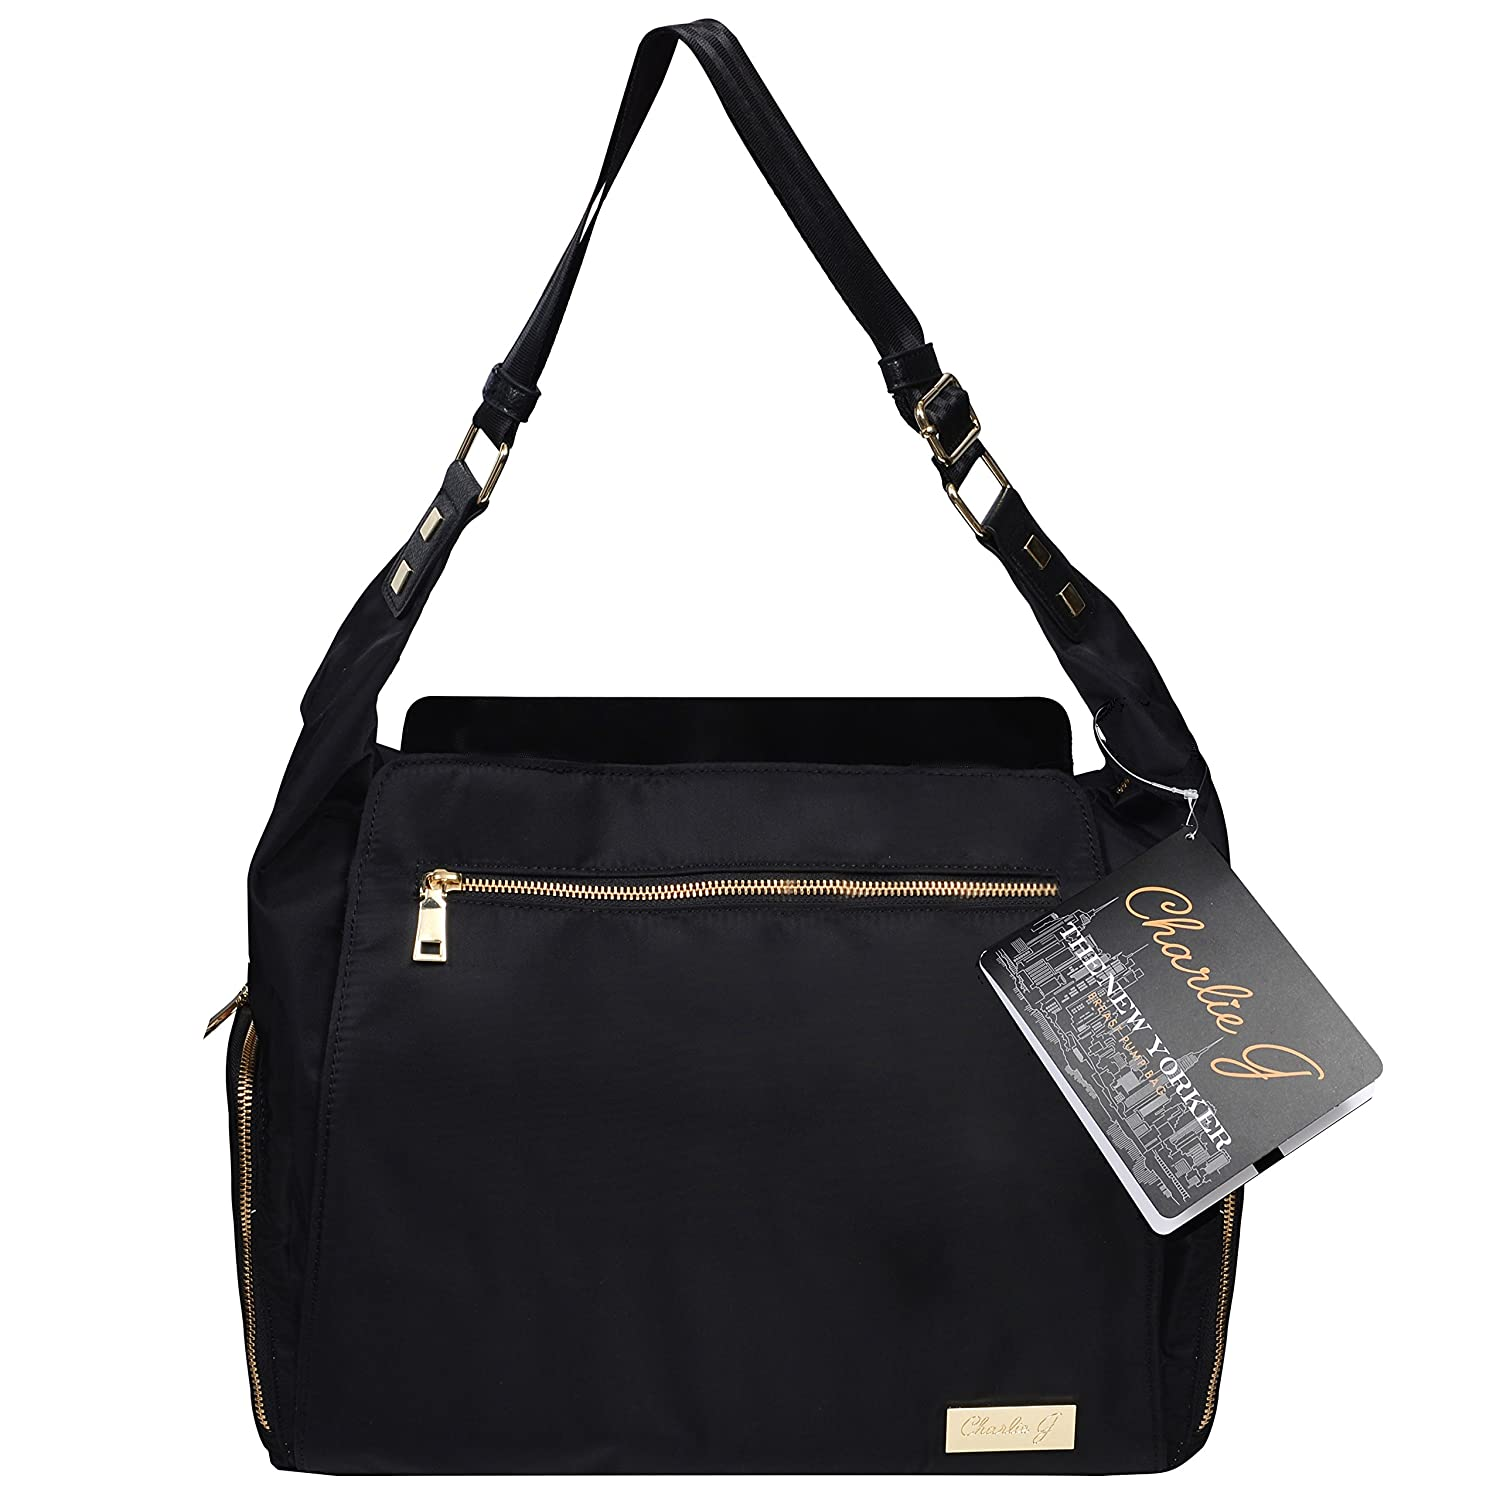 The New Yorker Breast Pump Bag by Charlie G, Black/Gold (Mini)